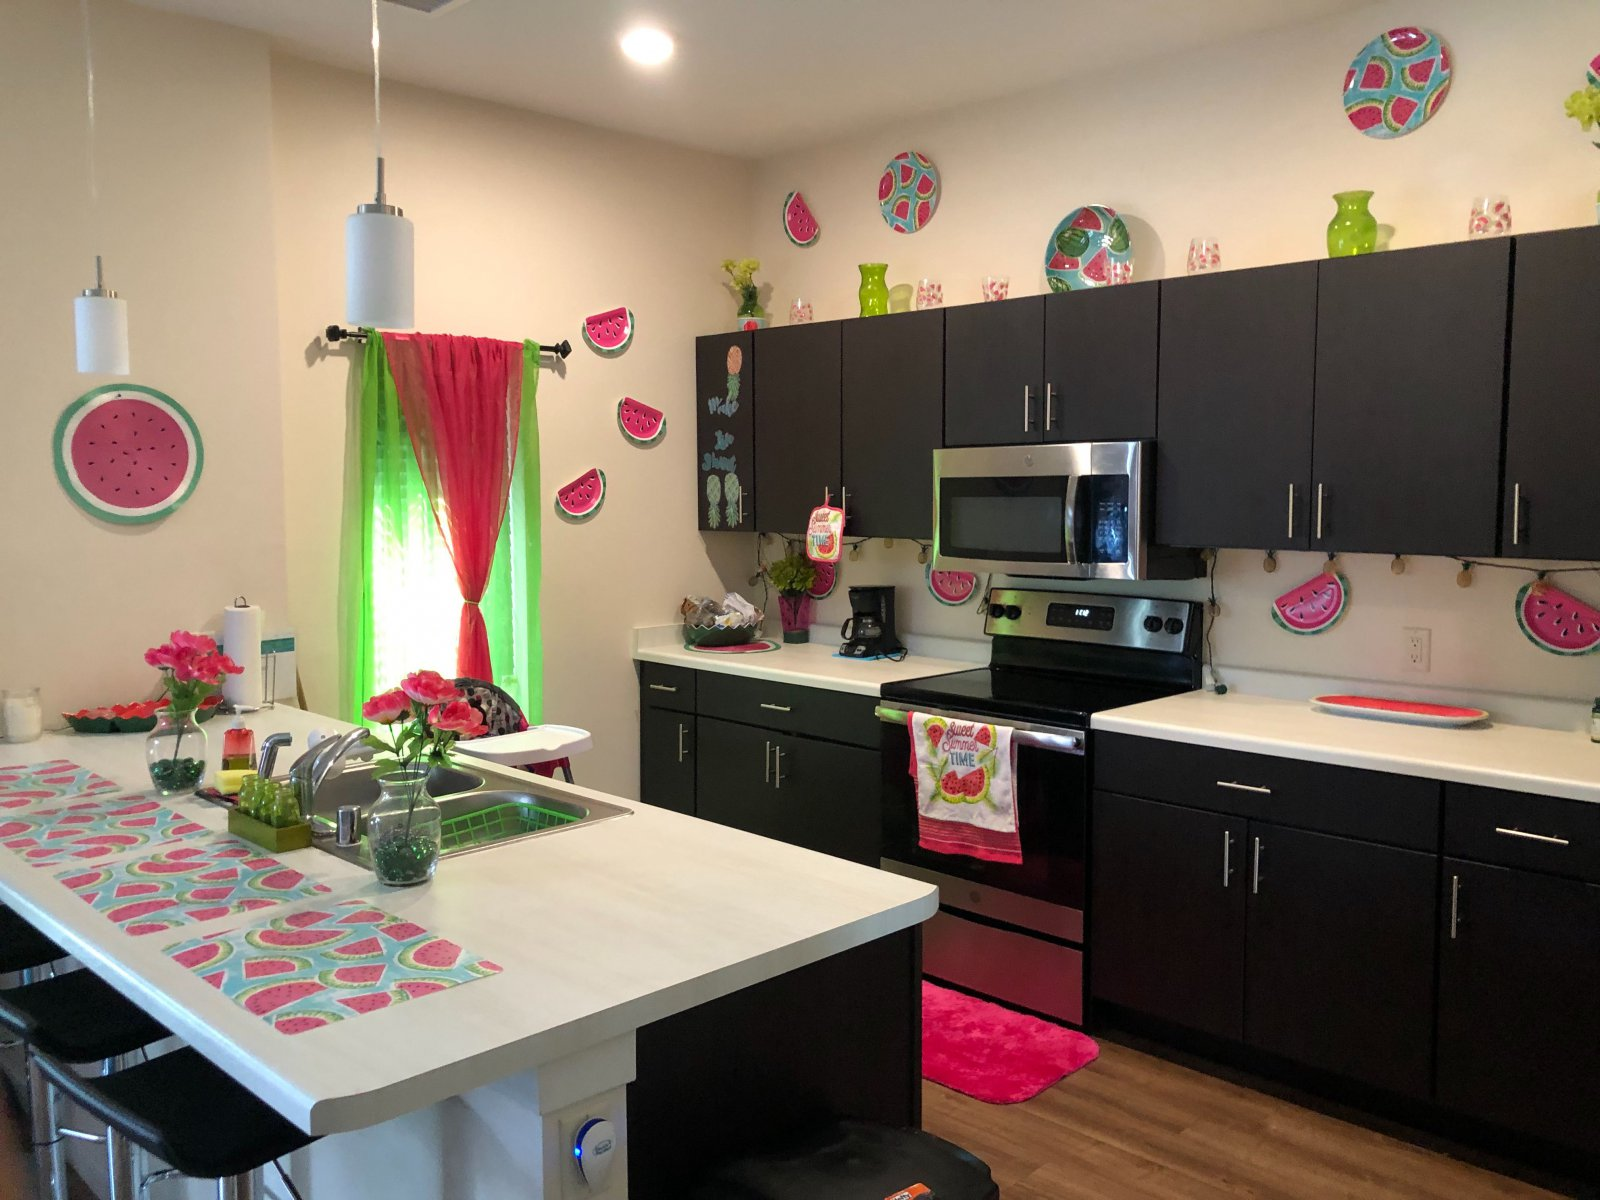 Kitchen at SEVEN04 Place